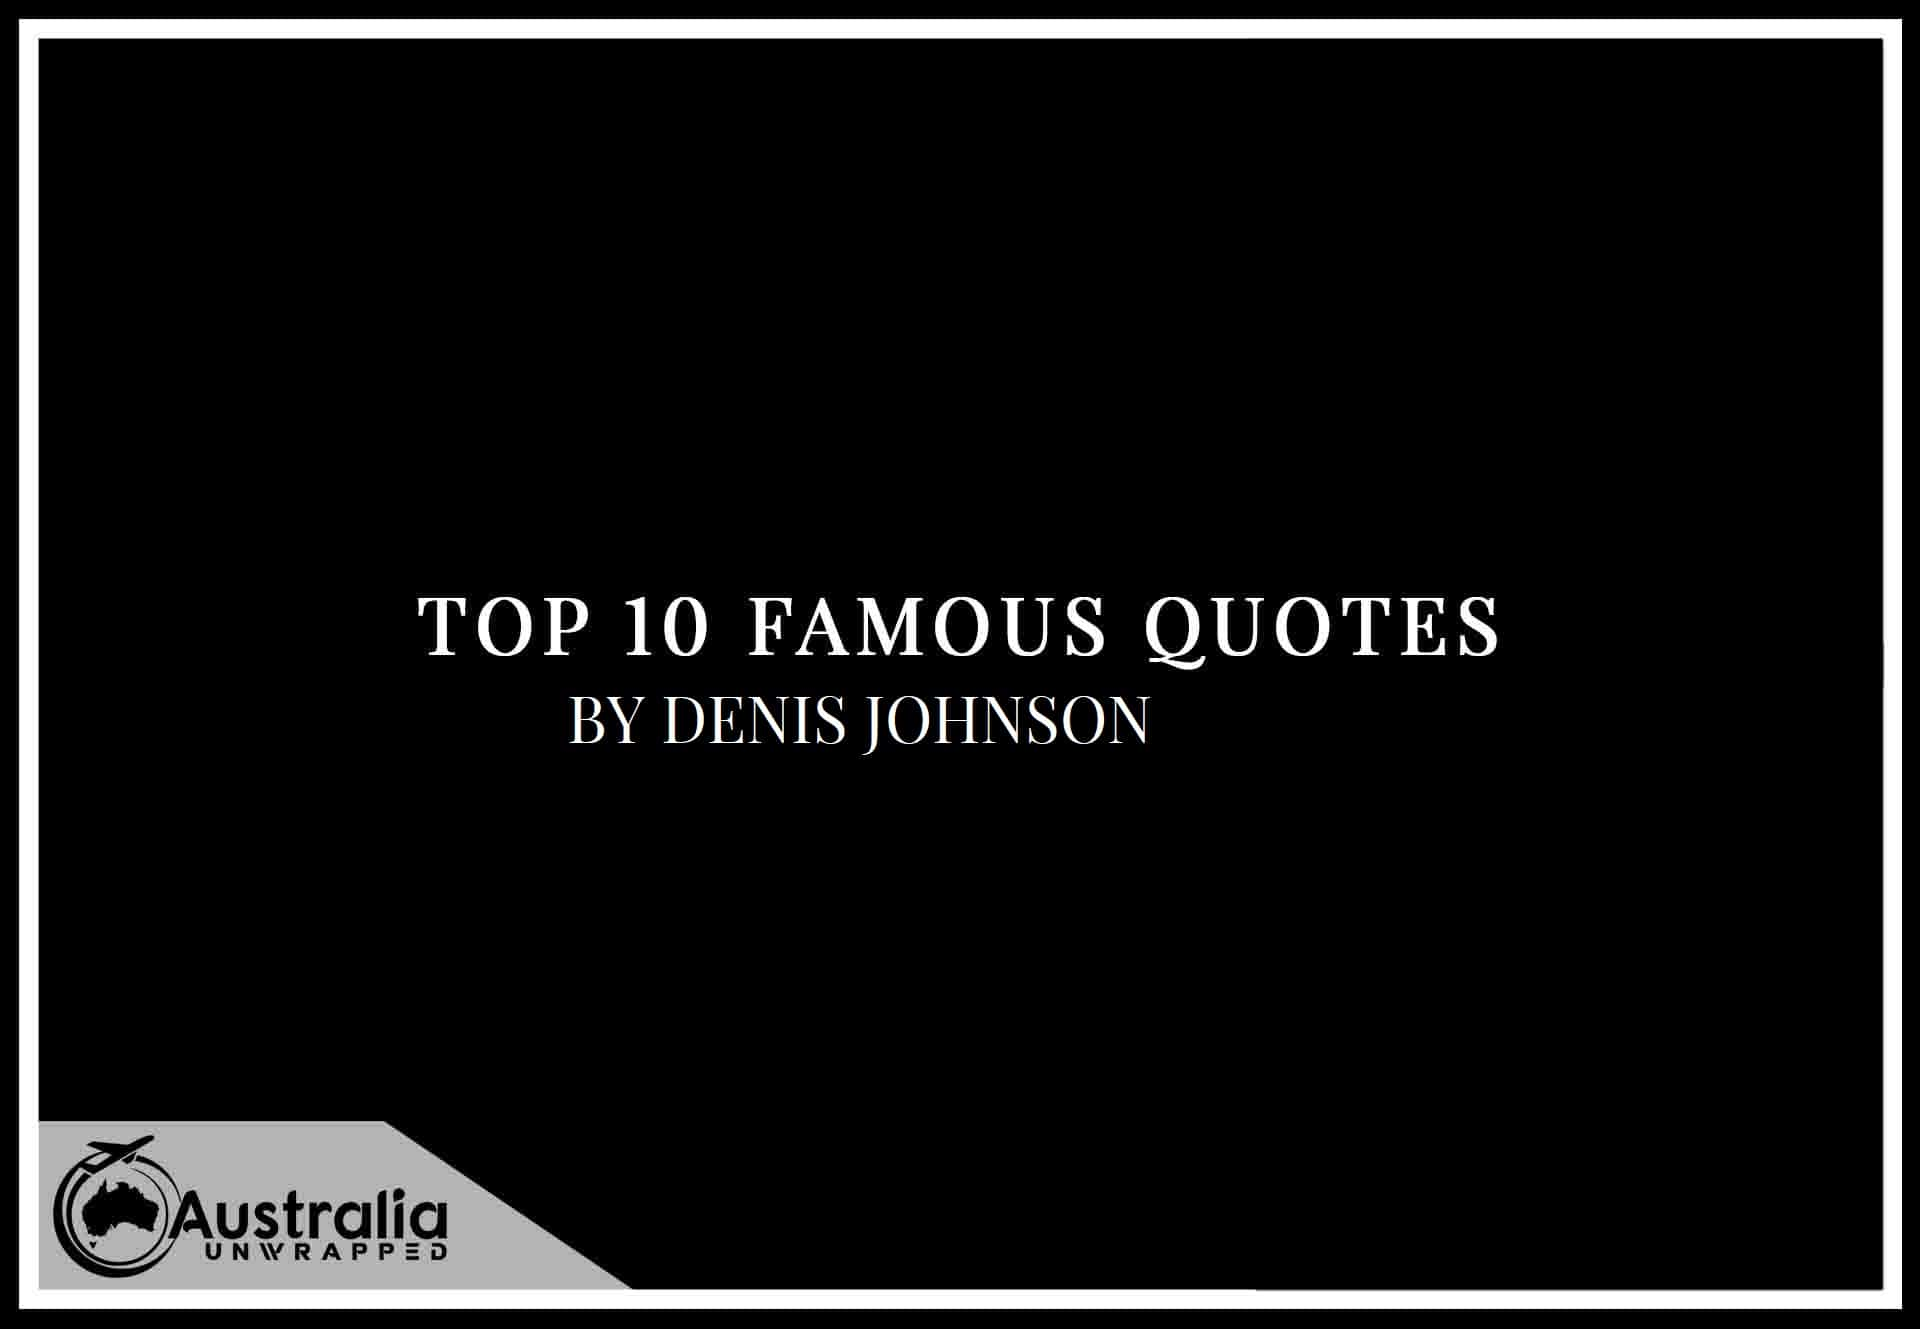 Top 10 Famous Quotes by Author Denis Johnson